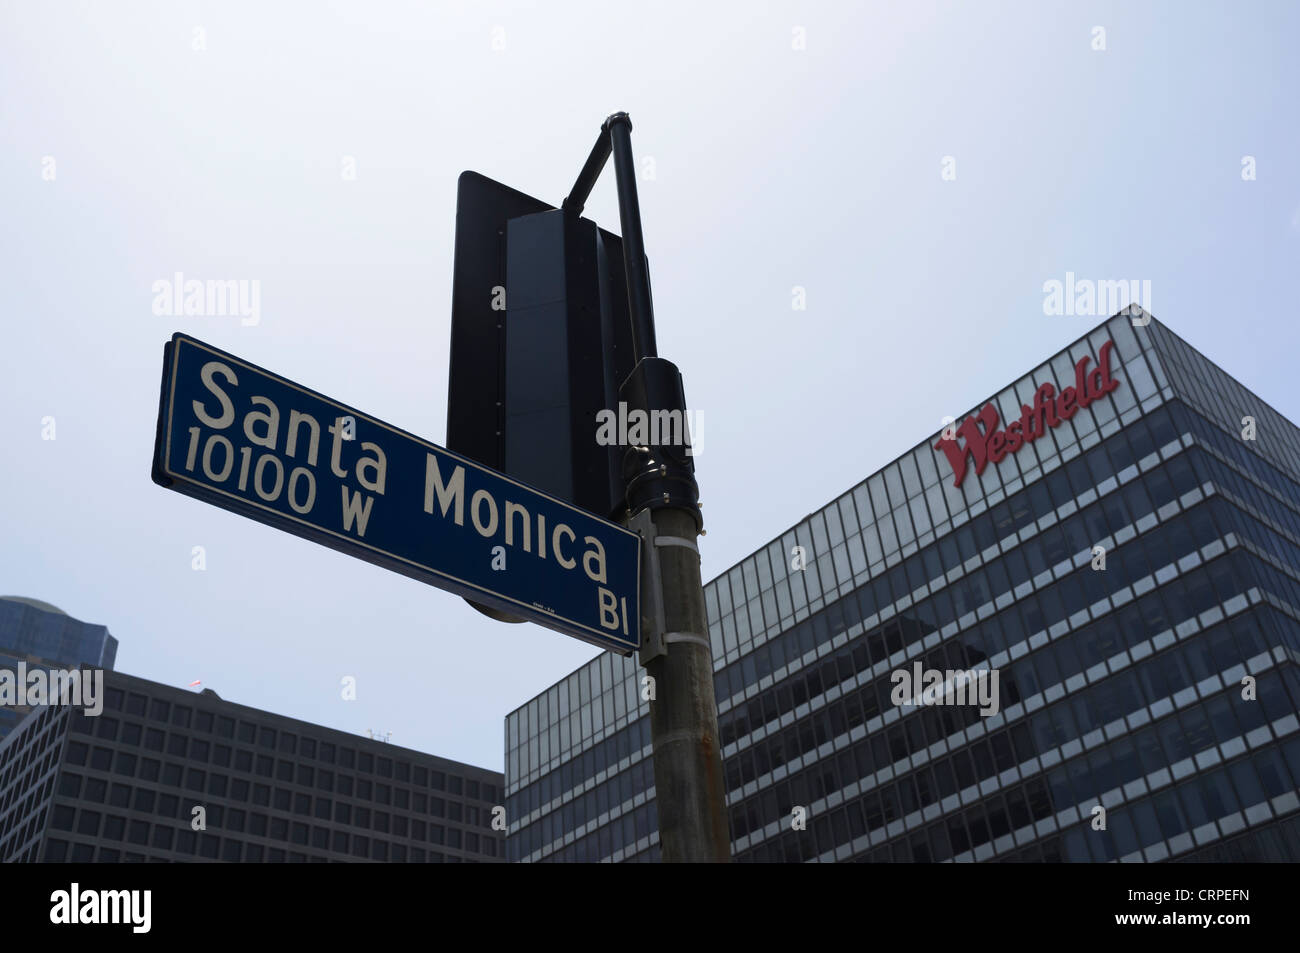 Westfield shopping centre overlooking Santa Monica Bl sign - Stock Image